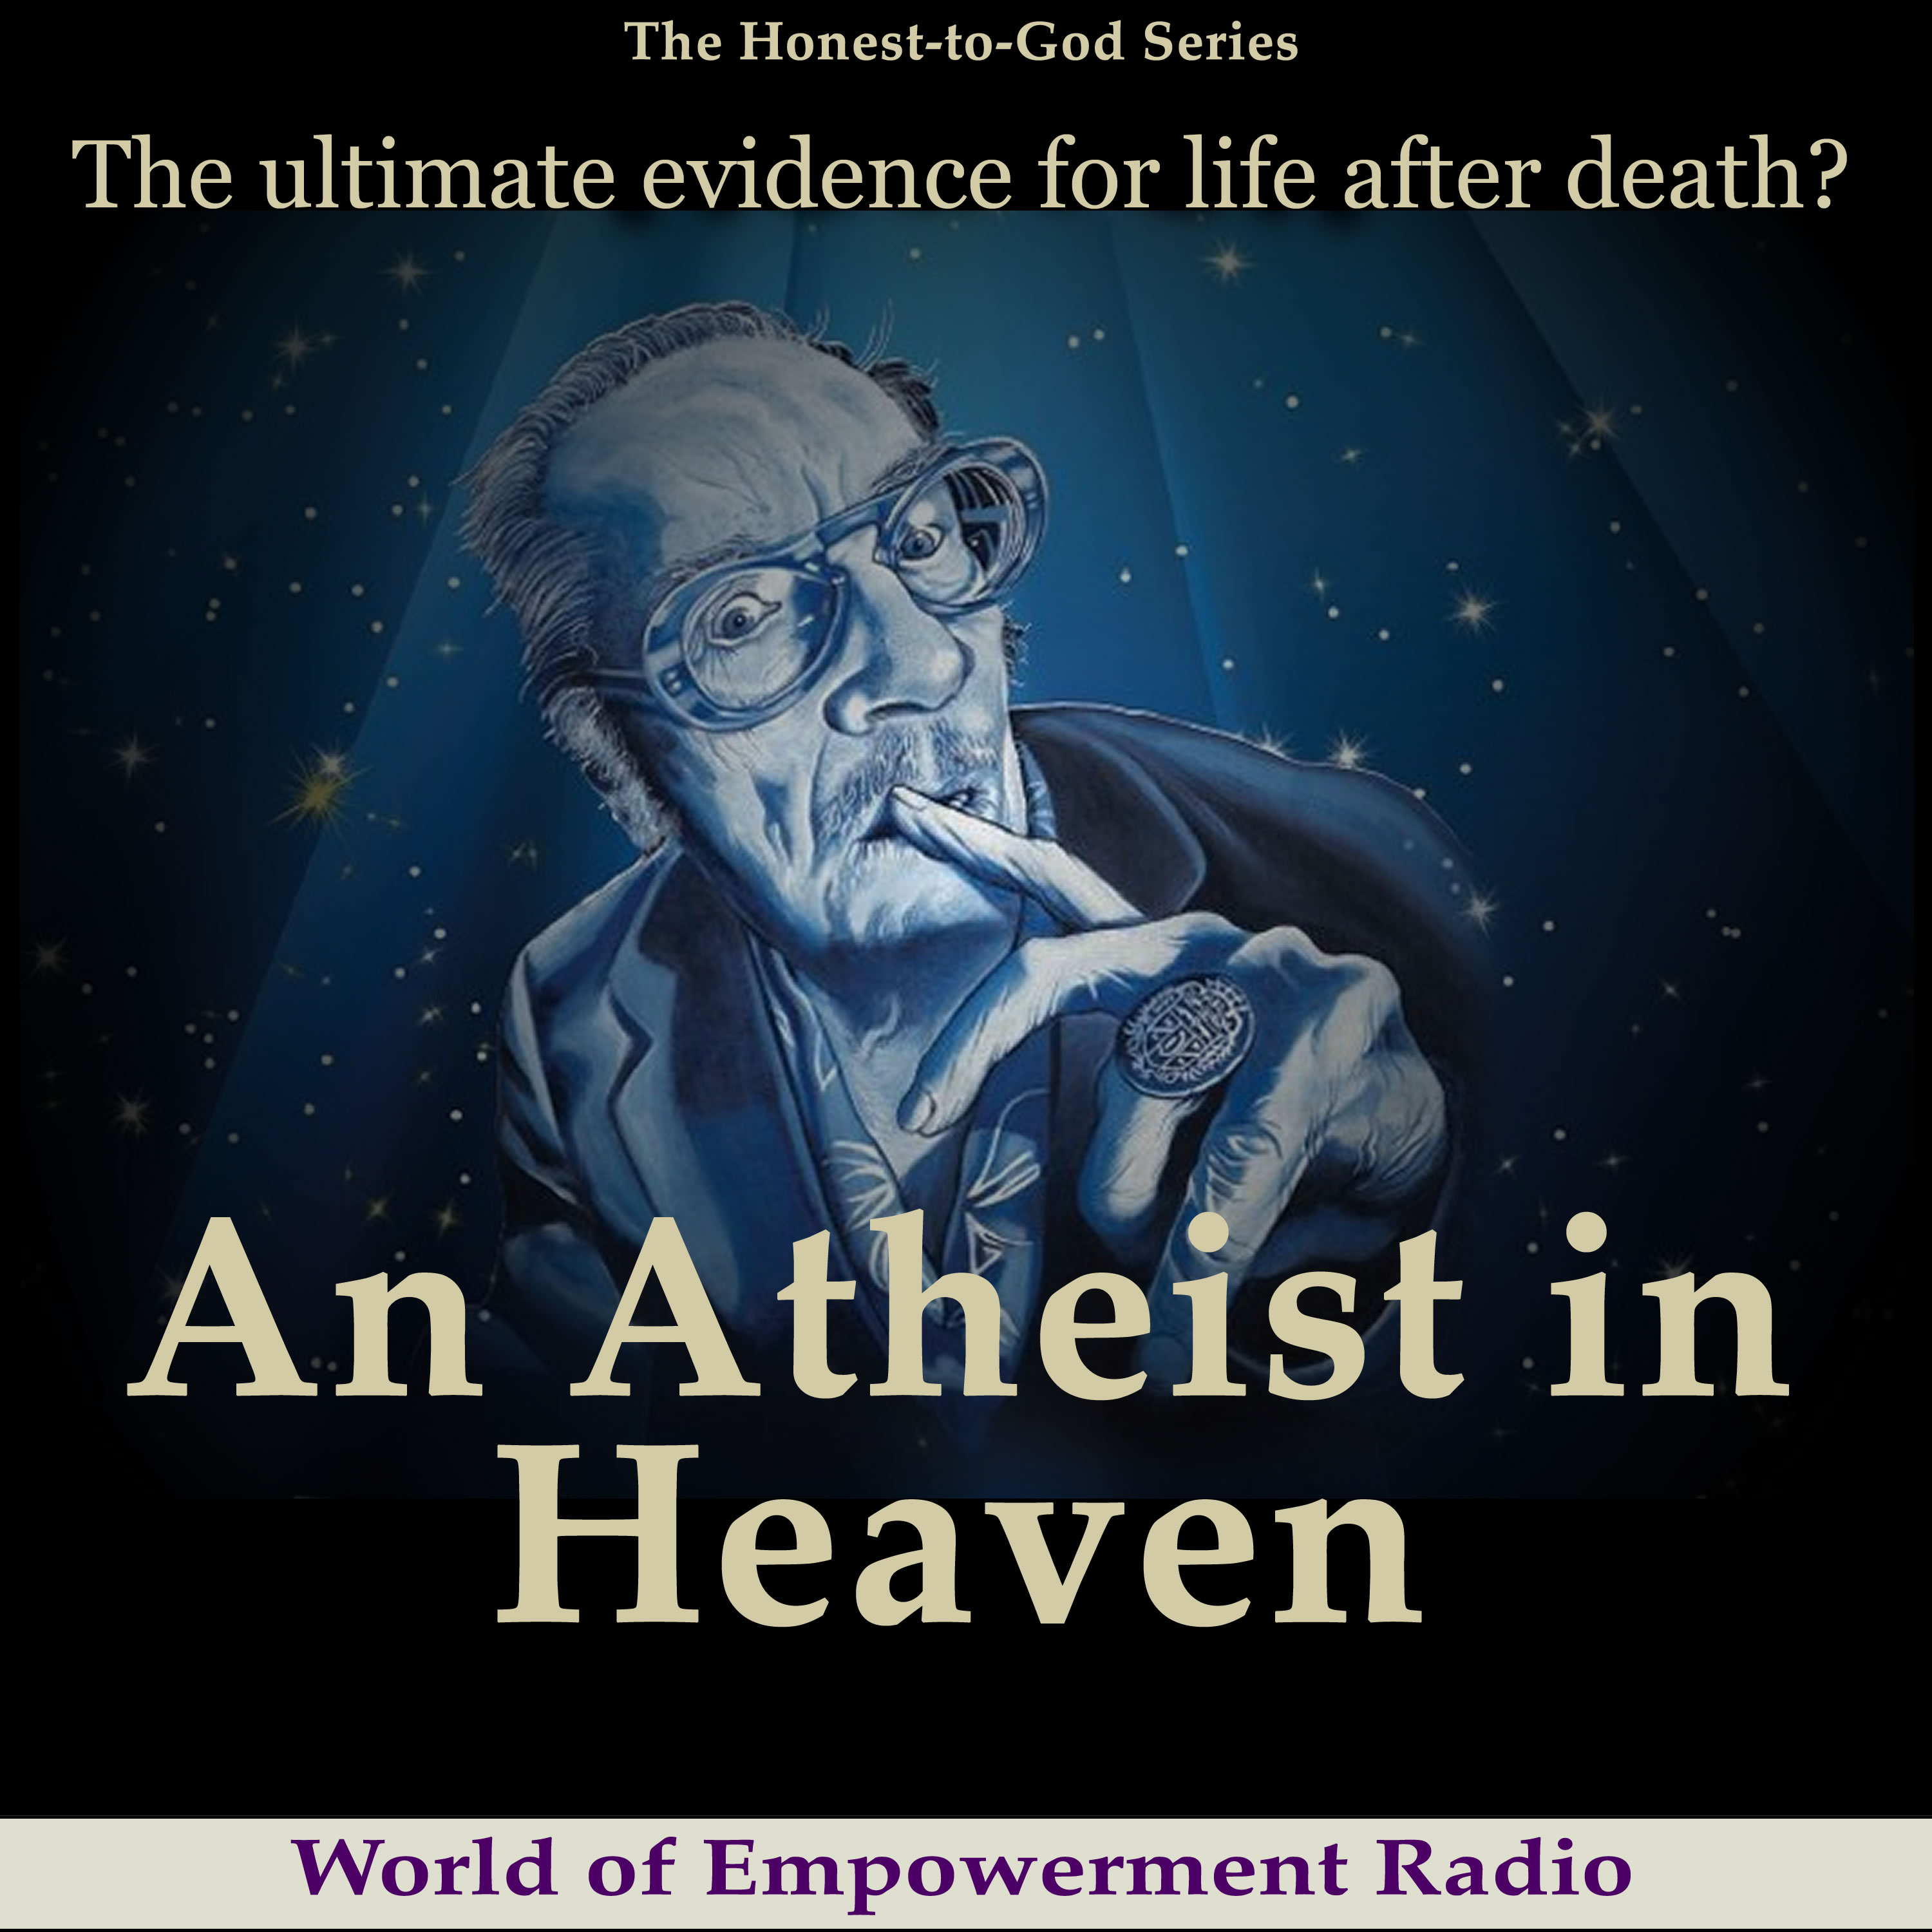 Paul Davids is inteviewed by Ahonu & Aingeal Rose on the The Honest-to-God Series on World of Empowerment Radio